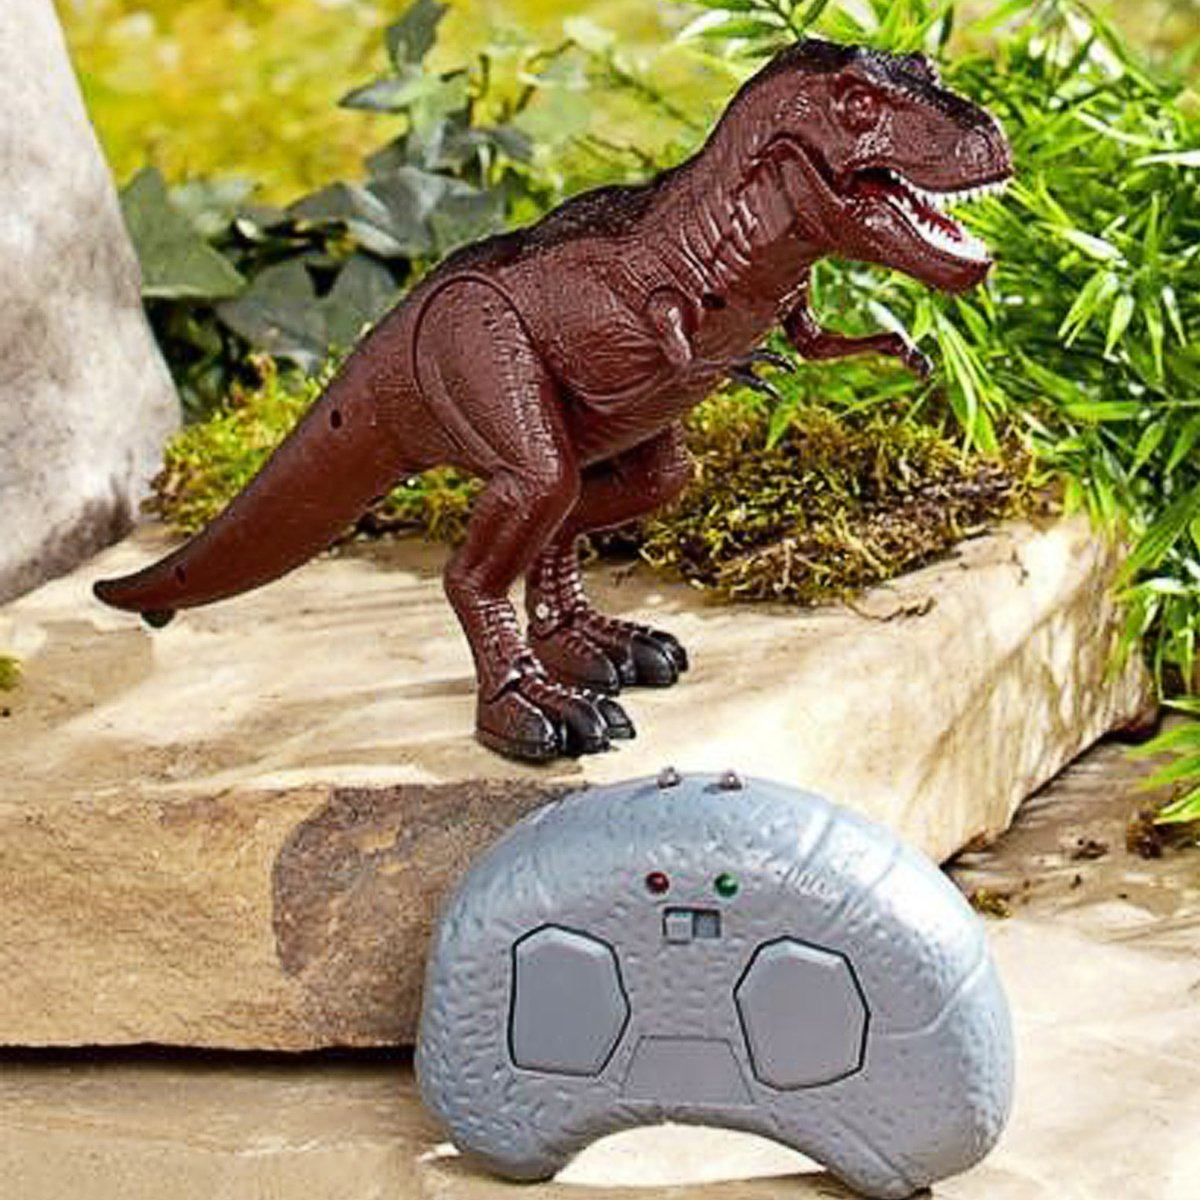 Clearance Dinosaur Toy With Remote Control